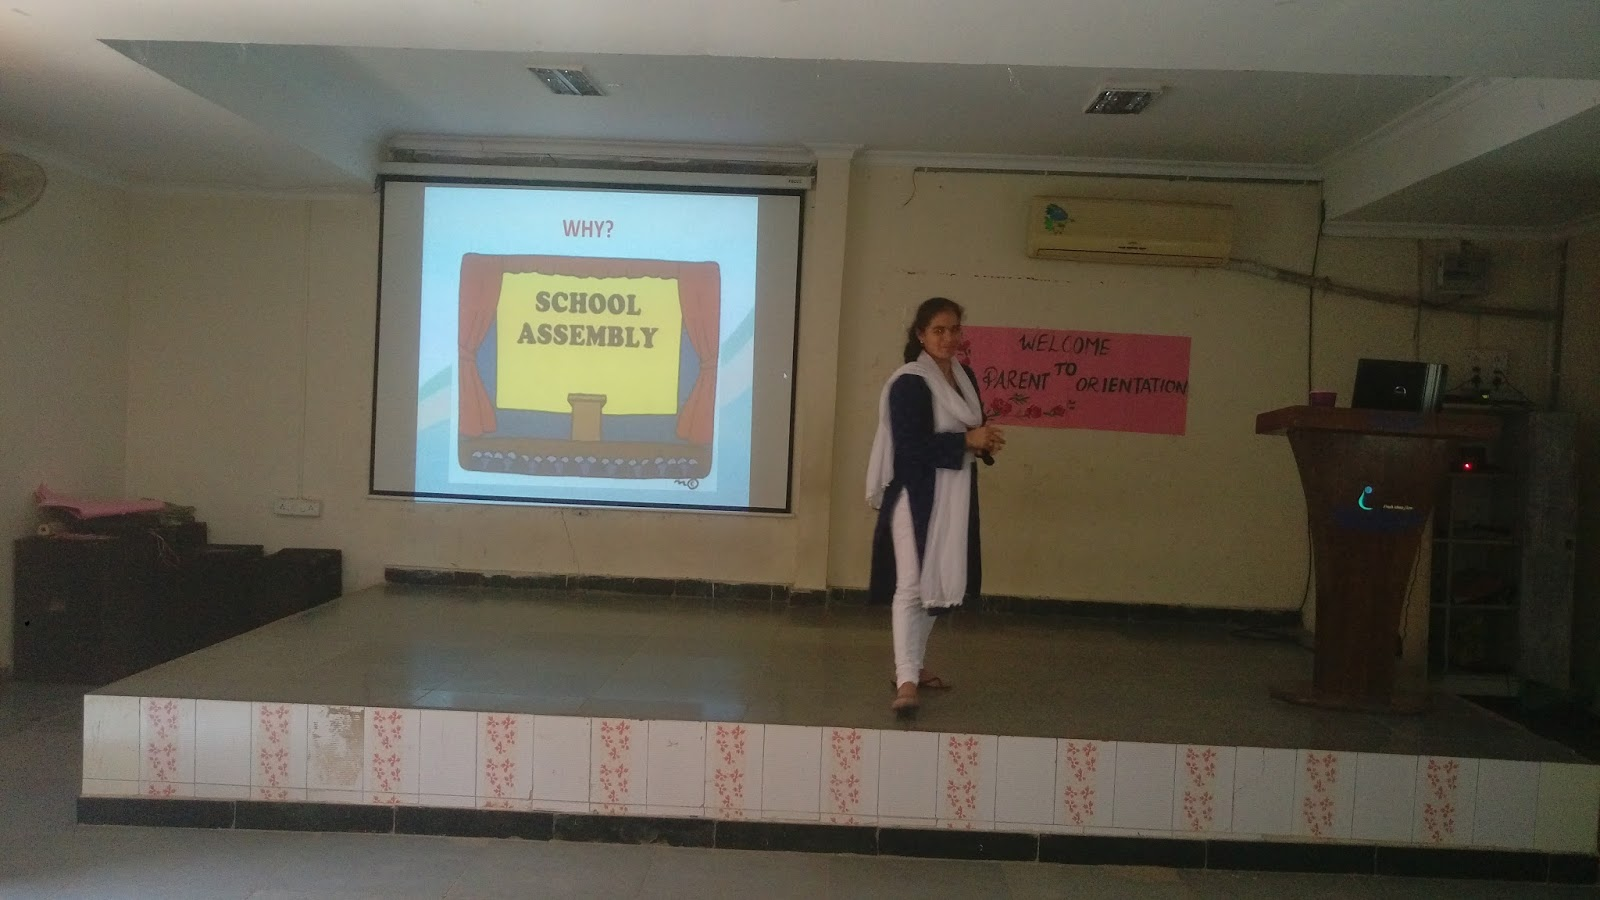 The Creek Planet School: A SESSION ON SCHOOL ASSEMBLY @ MERCURY